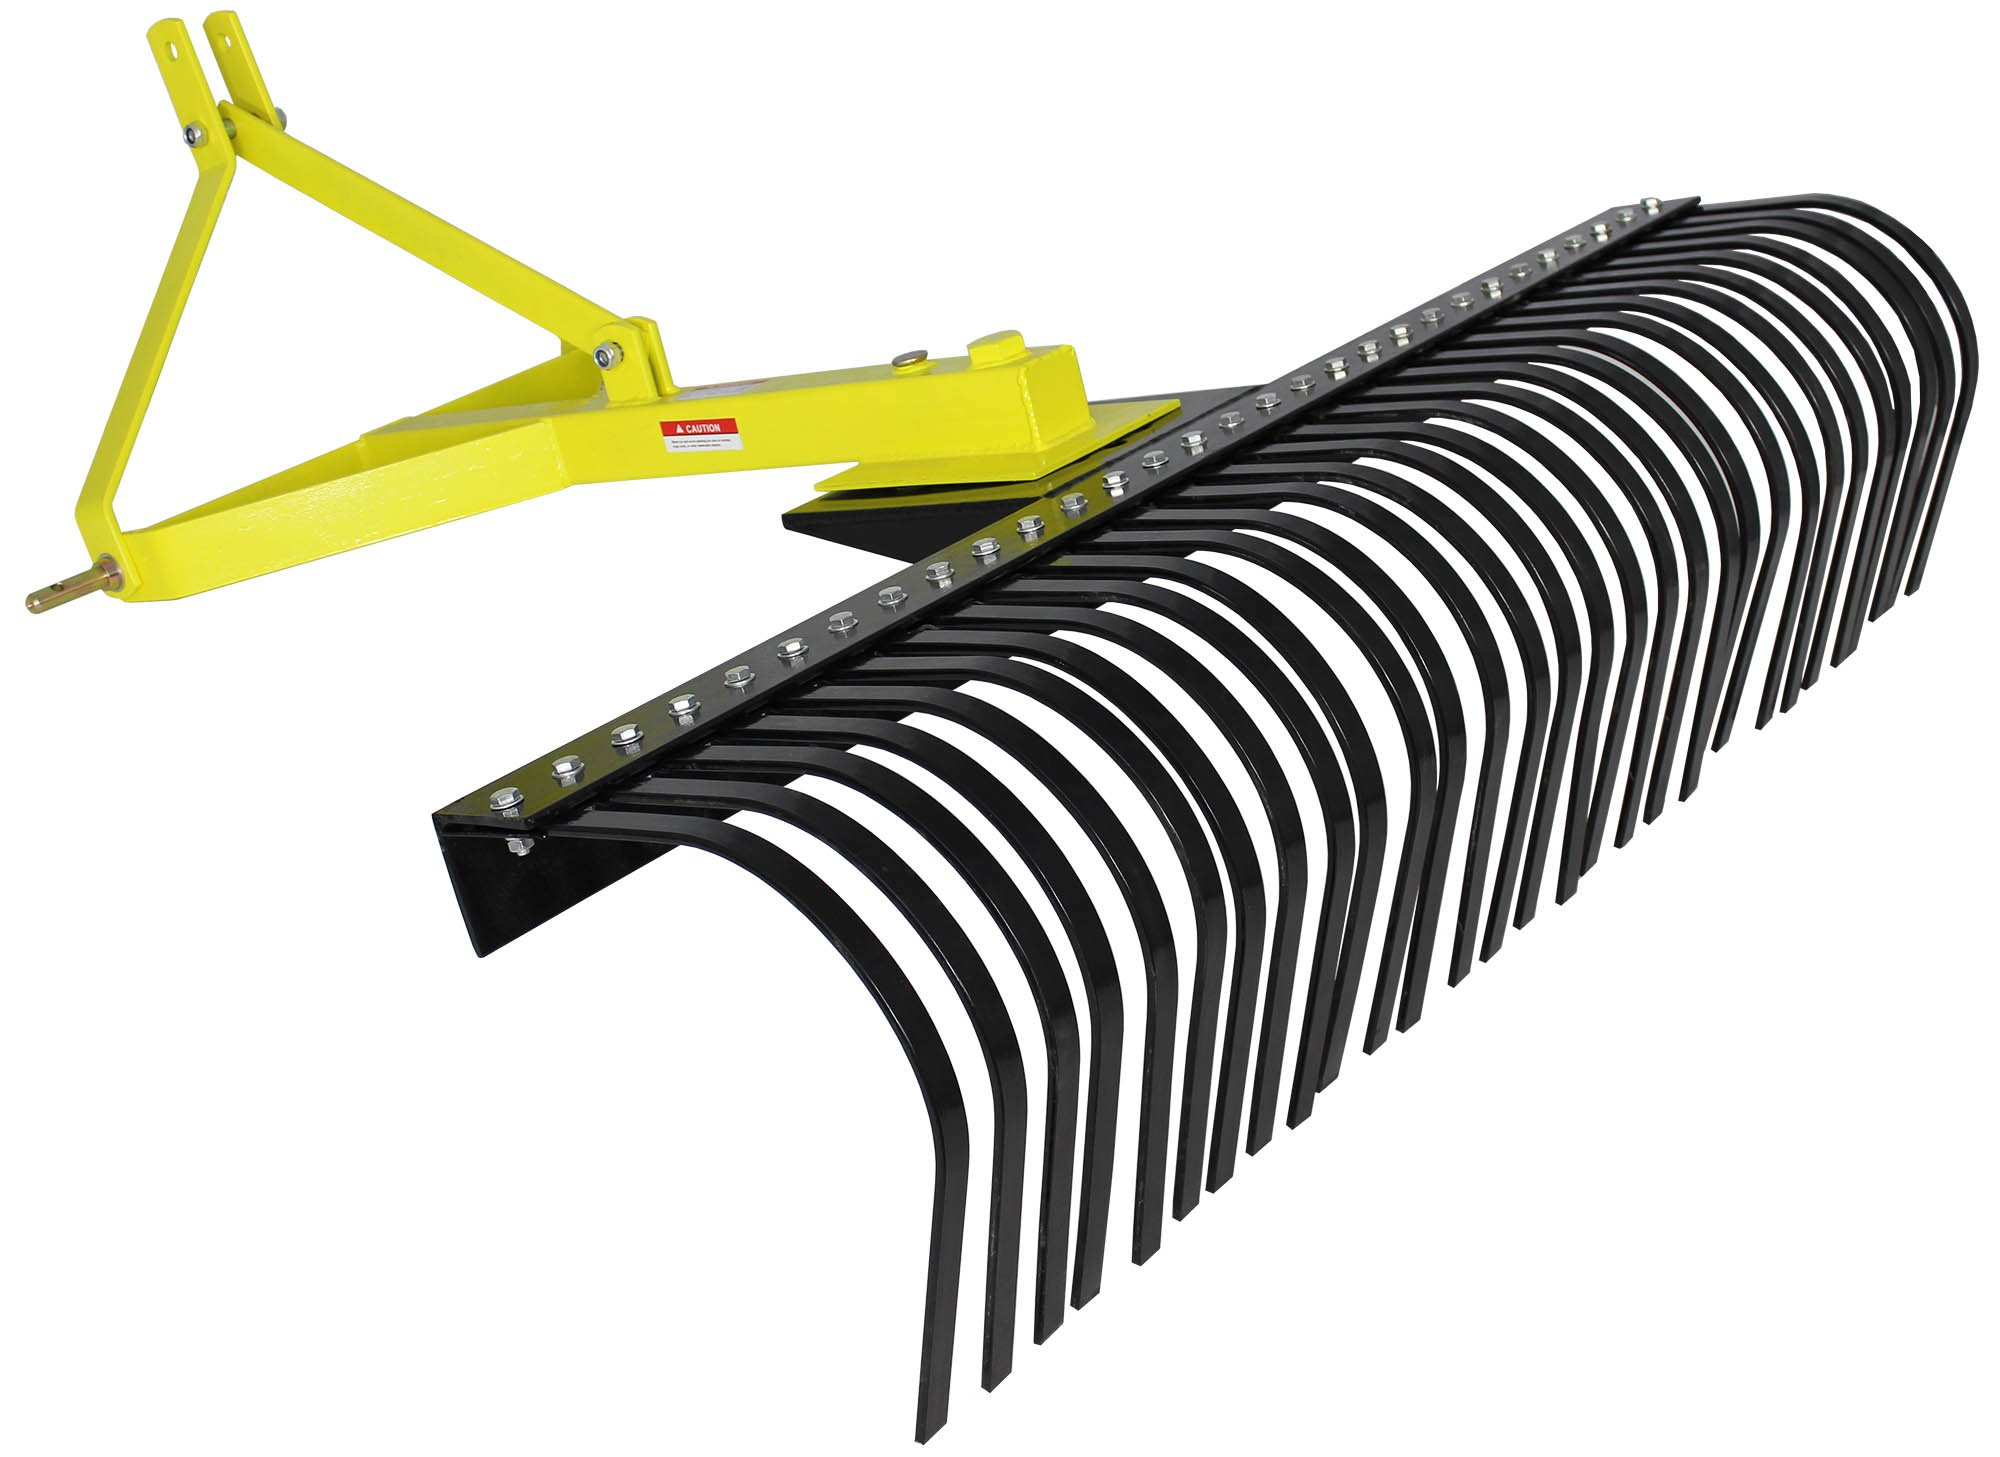 Titan Attachments Landscape Rock Rake 3 Point Soil Gravel Lawn Tow Behind Compact Tractor 4ft York